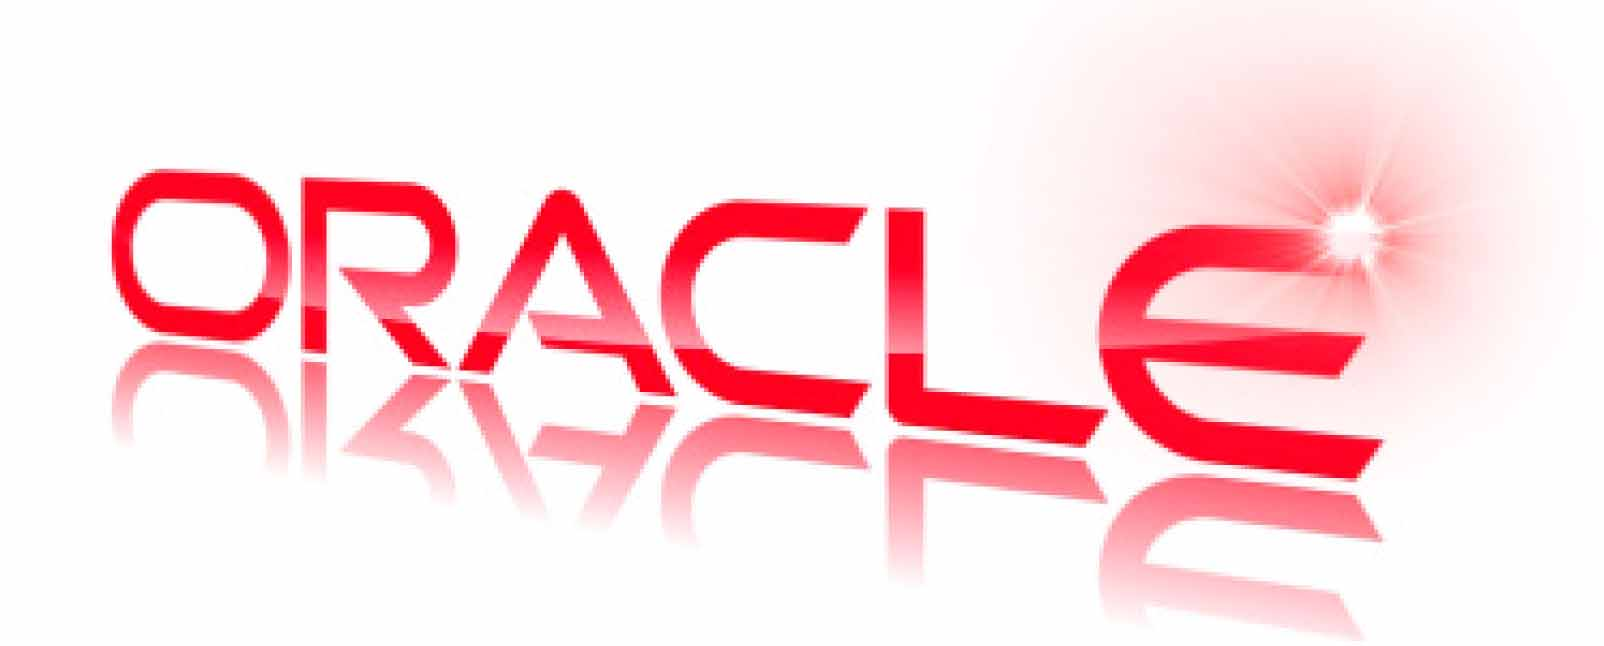 Oracle Logo - Oracle-Logo - Marketing Space l Brands and Marketing in Nigeria